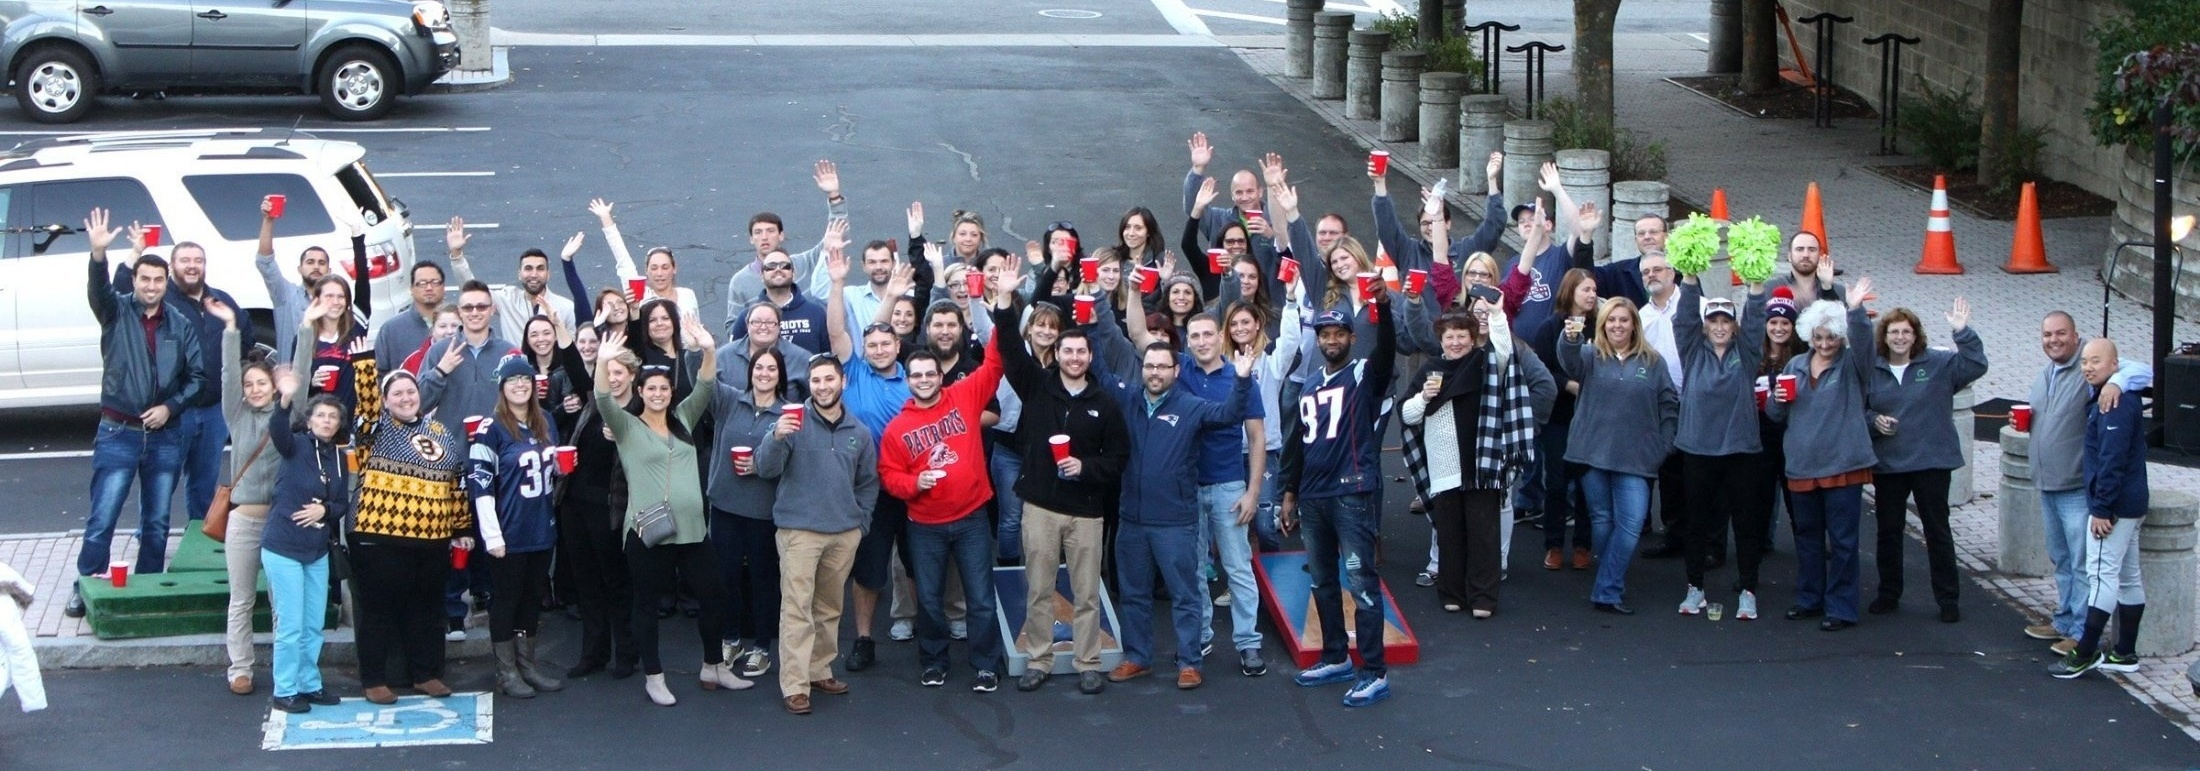 Image of team at tailgate party - 2014